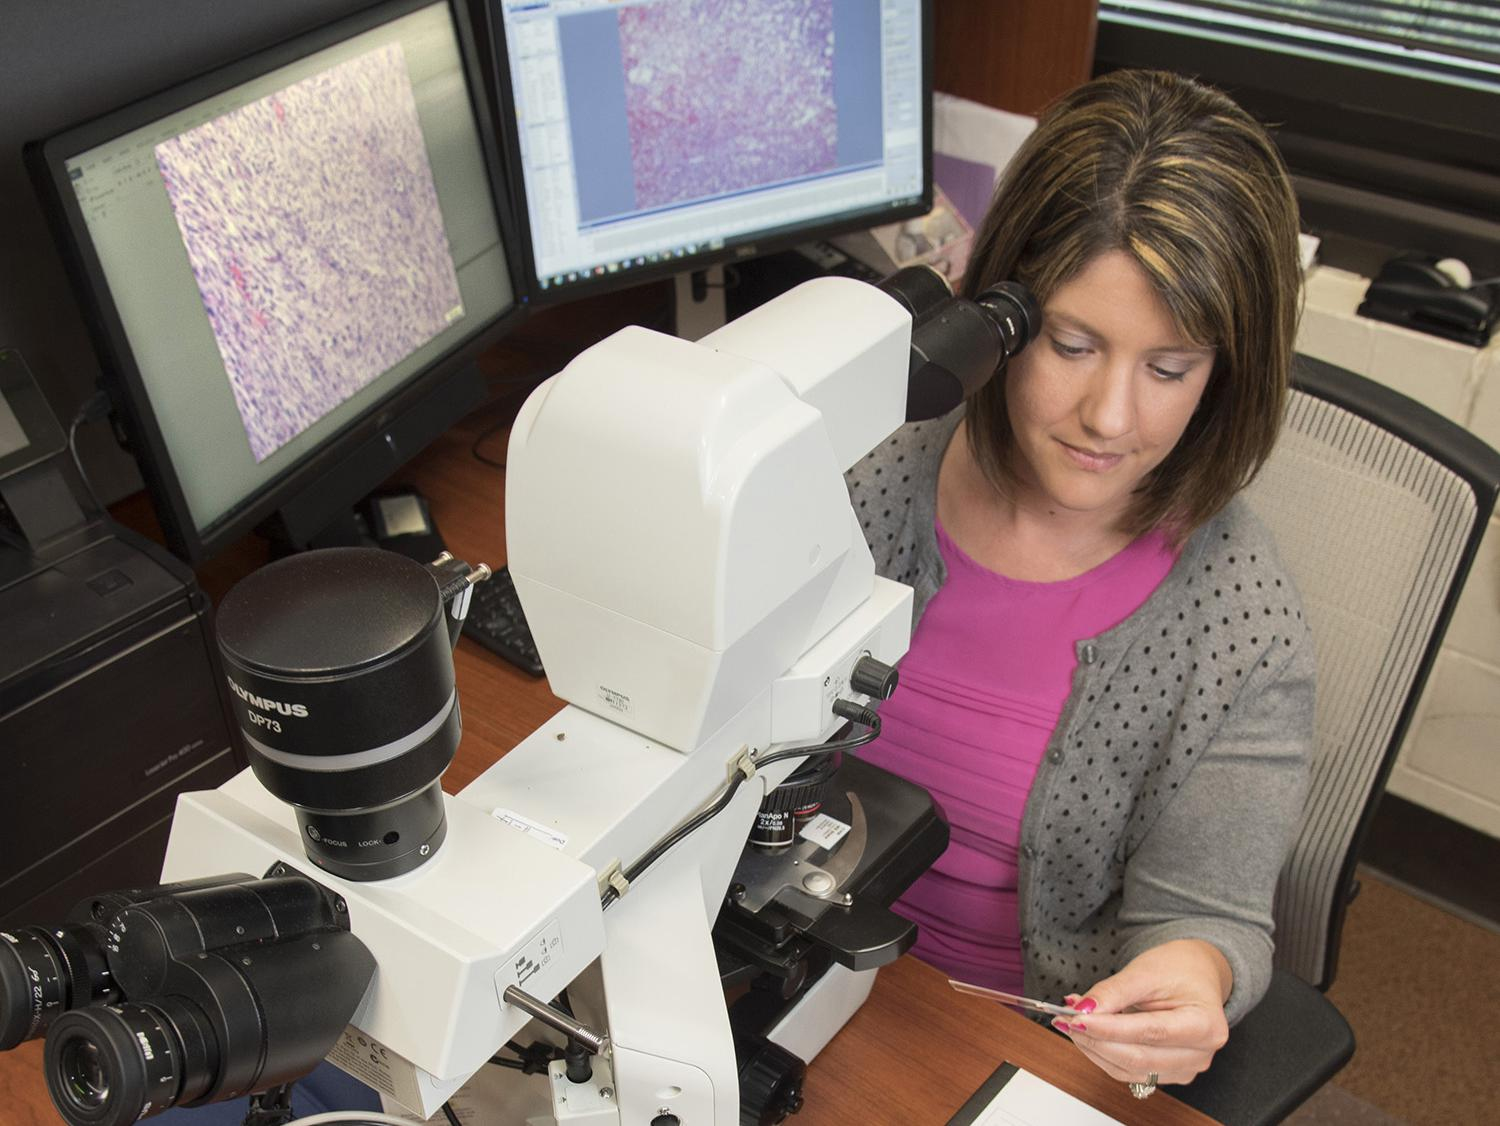 Dr. Alicia Olivier, an assistant professor in the Mississippi State University College of Veterinary Medicine, prepares to view a histology slide from a necropsy under a microscope. MSU offers this service to help determine causes of death for animals. (Photo by MSU-CVM/Tom Thompson)